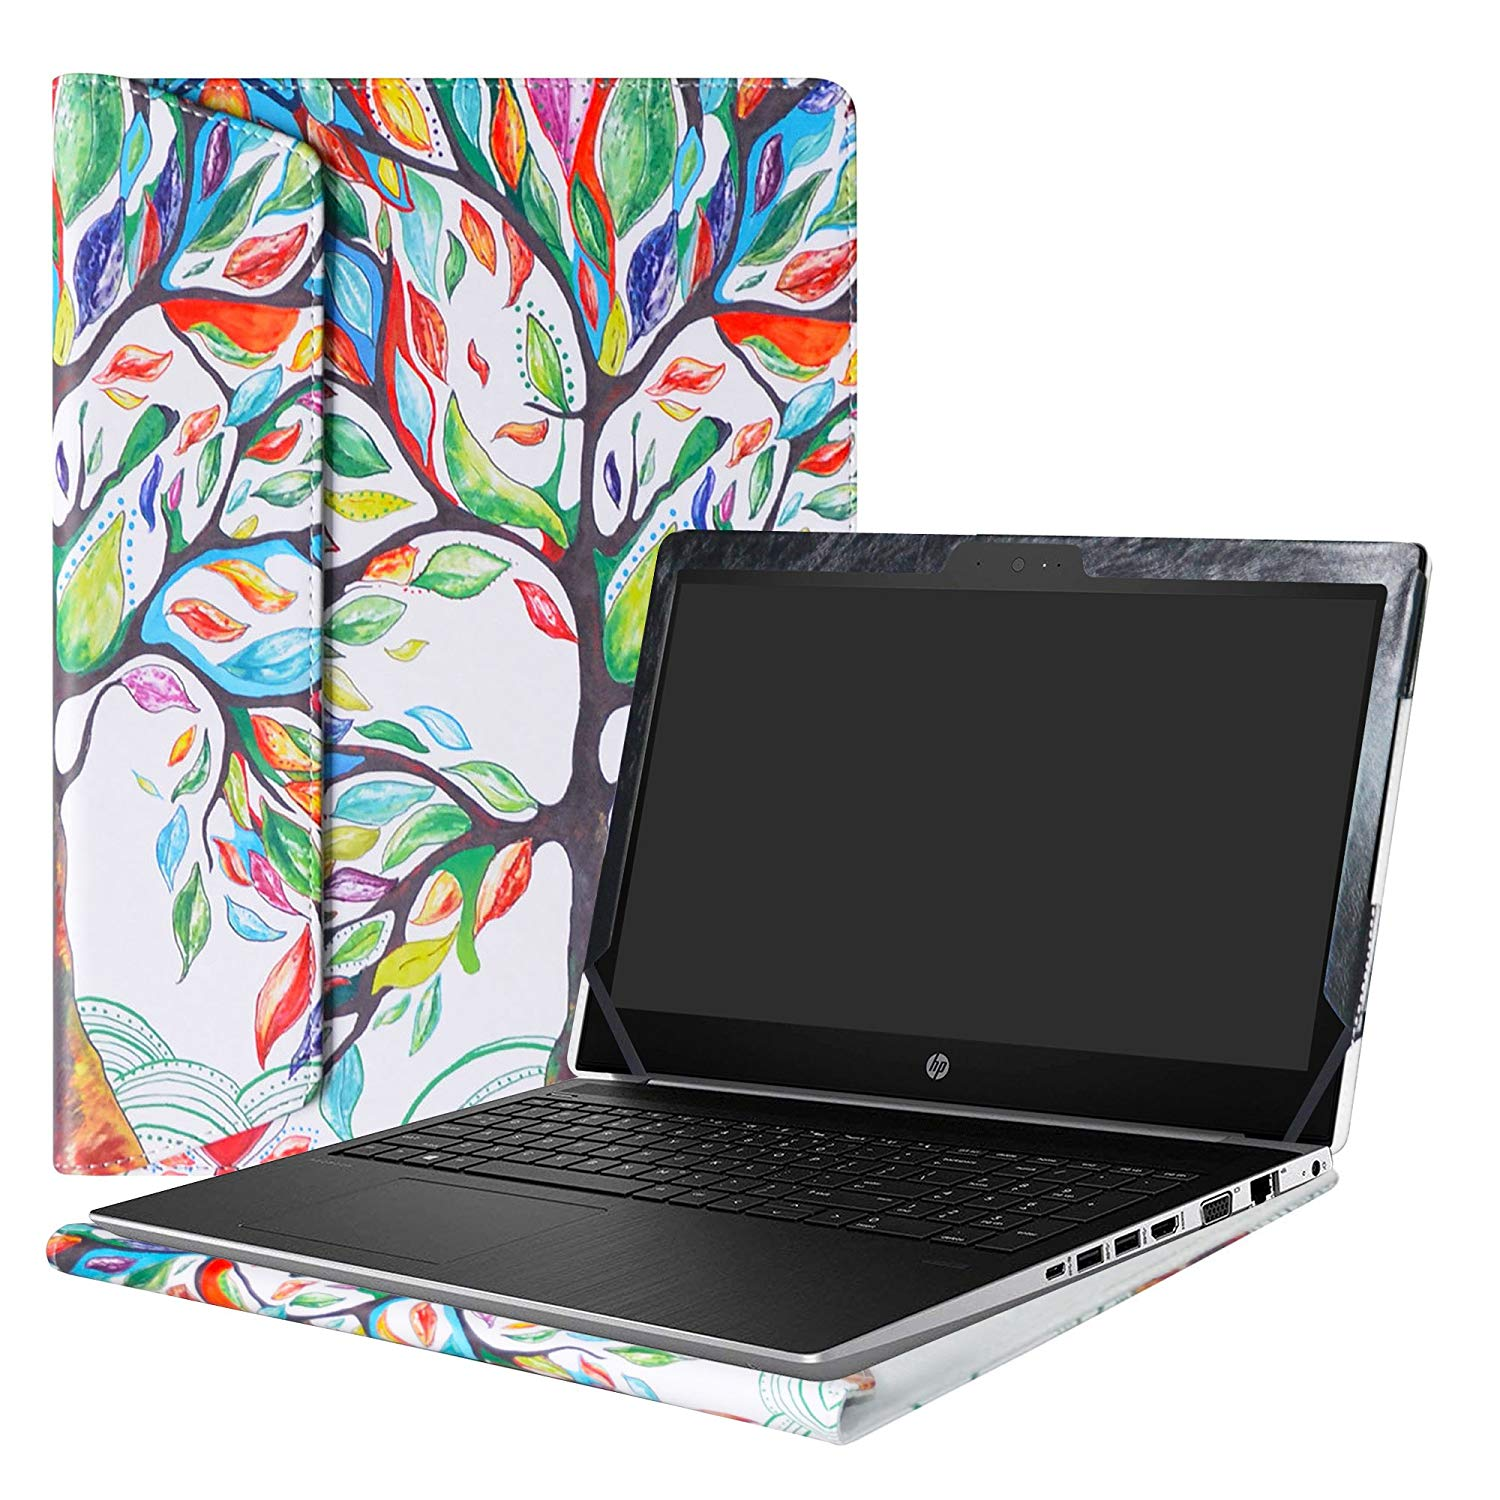 "Alapmk Protective Case Cover For 15.6"" HP ProBook 450 G5/ProBook 455 G5 Series Laptop(Warning:Not fit HP ProBook 450 G4 G3 G2 G3 G0/ProBook 455 G4 G3 G2 G1),Love Tree"